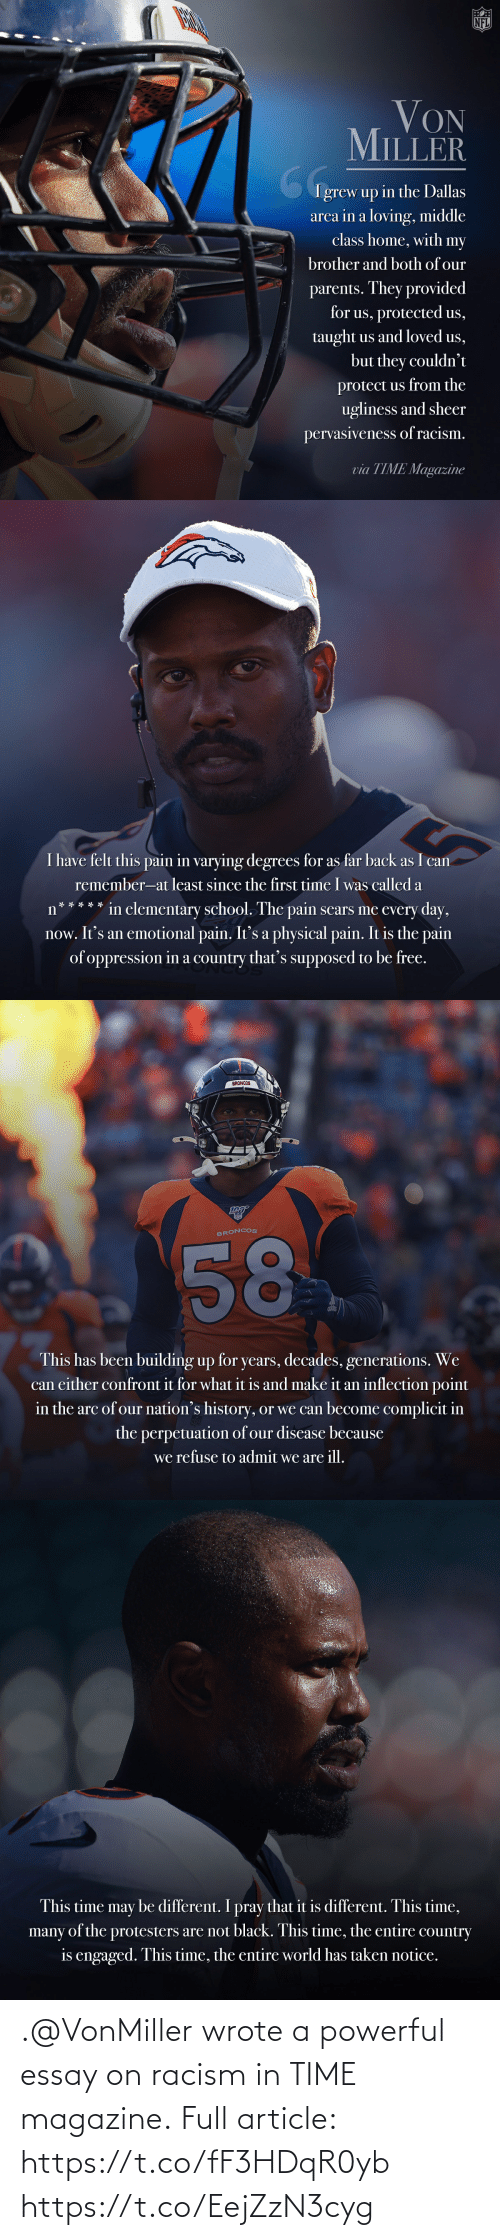 Memes, Racism, and Time: .@VonMiller wrote a powerful essay on racism in TIME magazine.  Full article: https://t.co/fF3HDqR0yb https://t.co/EejZzN3cyg